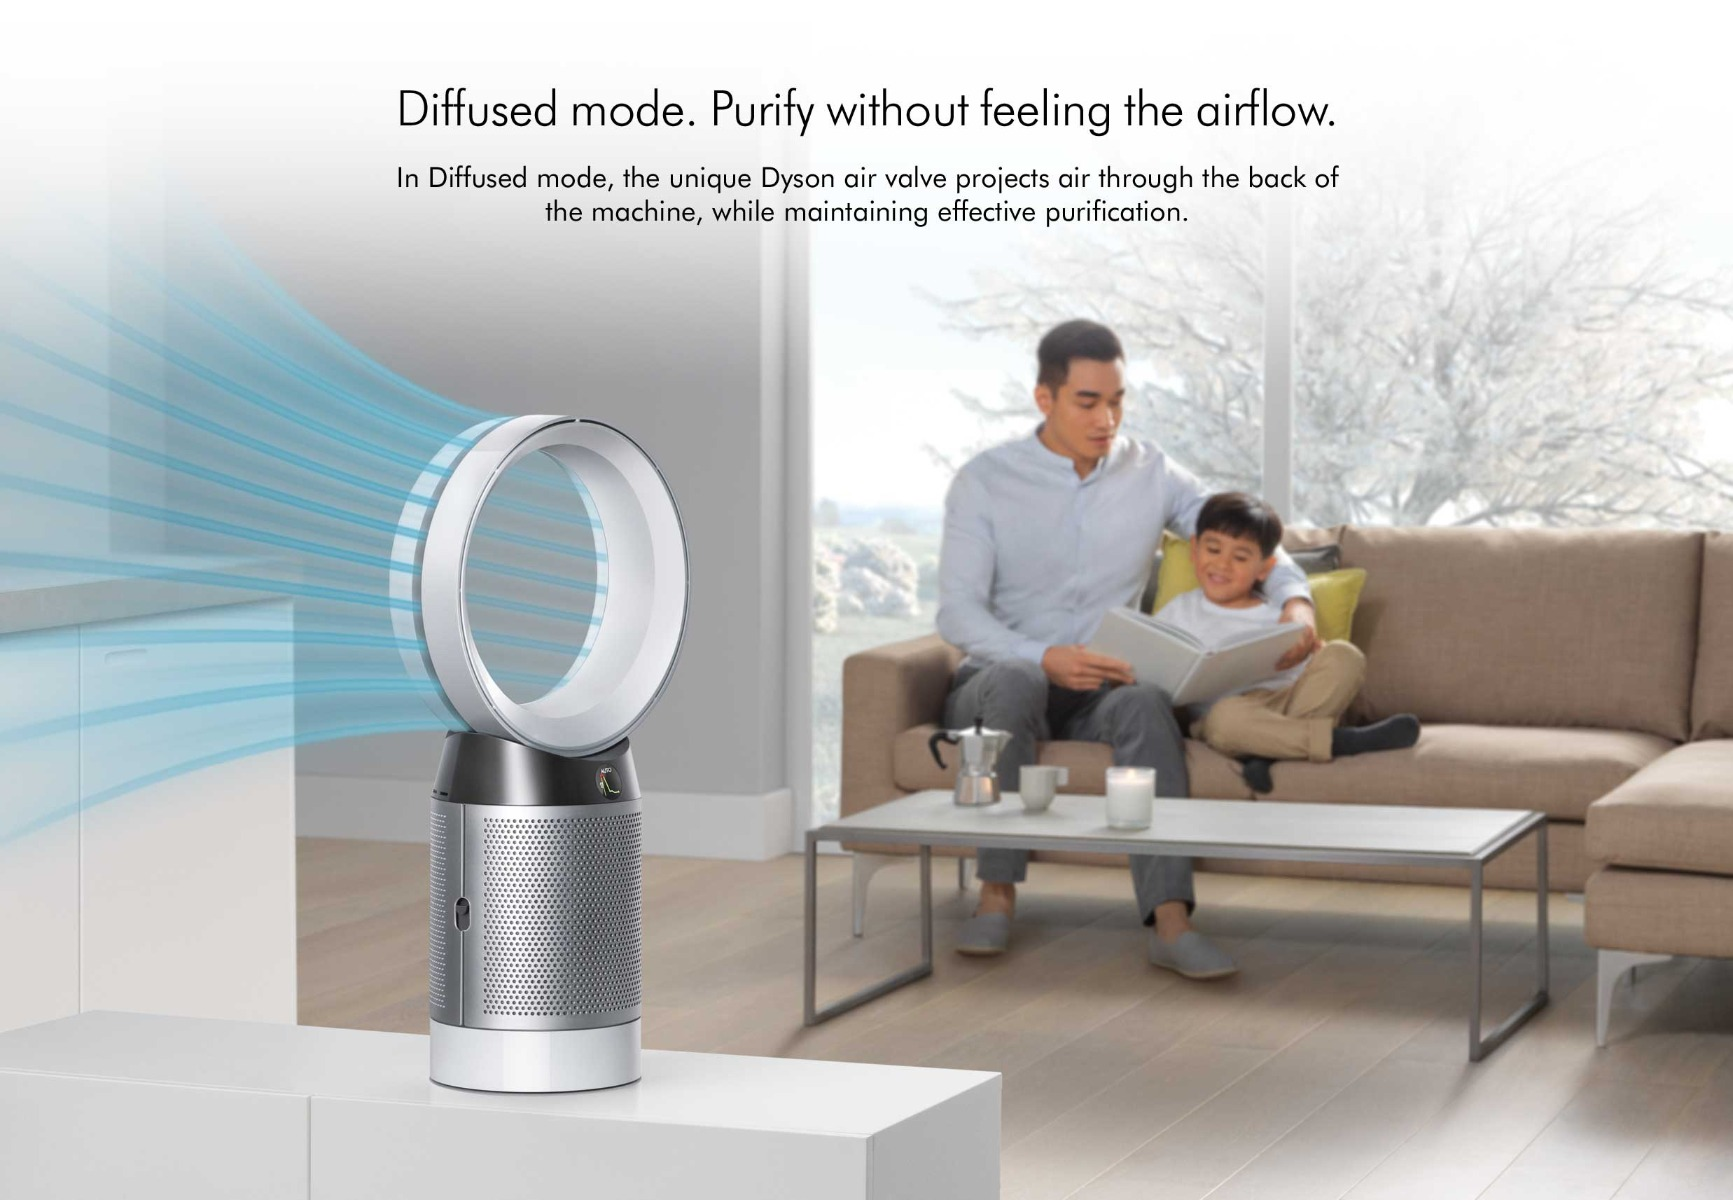 diffused mode, purify without feeling the airflow